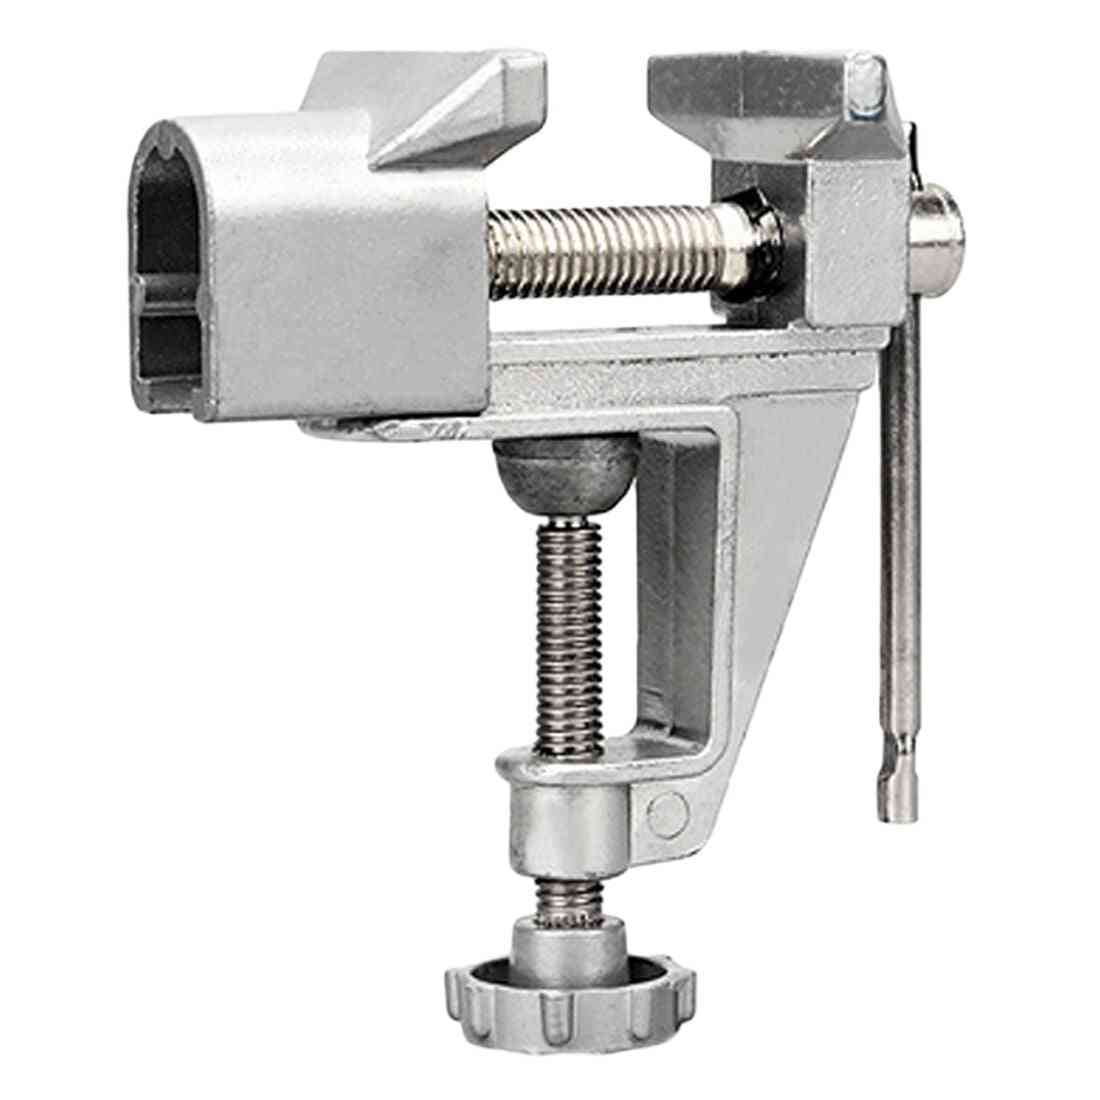 Machine Bench And Screw Vise, Mini Table Clamp For Craft Mould Fixed Repair Tool